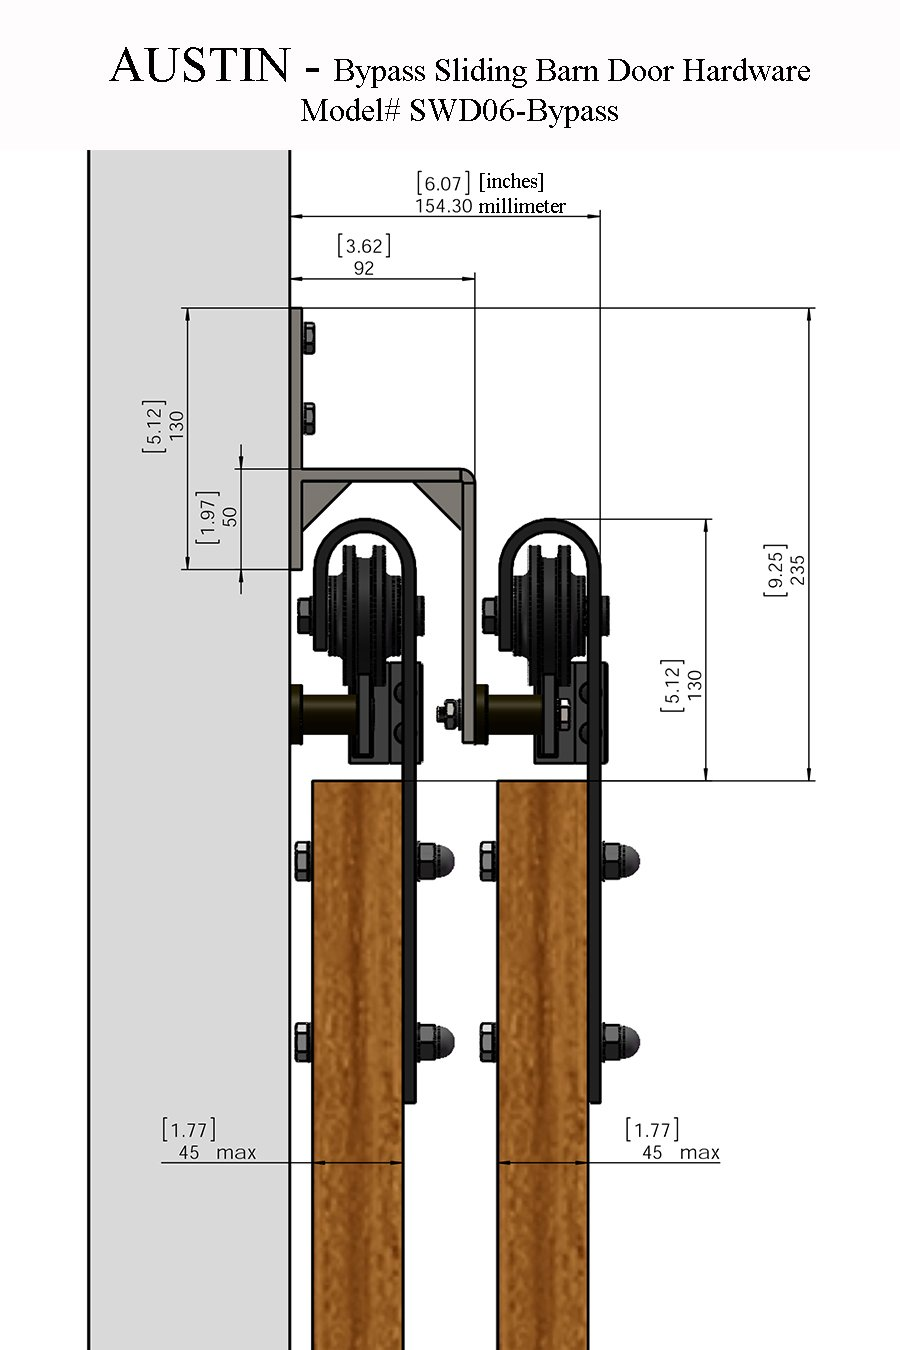 sbd AUSTIN - 8' feet - 98'' 2.5 m Rail DOUBLE BYPASS Sliding Barn Door Hardware Rustic Antique Classic Country Track RailSteel extra long by LuxuryModernHome.com (Image #3)